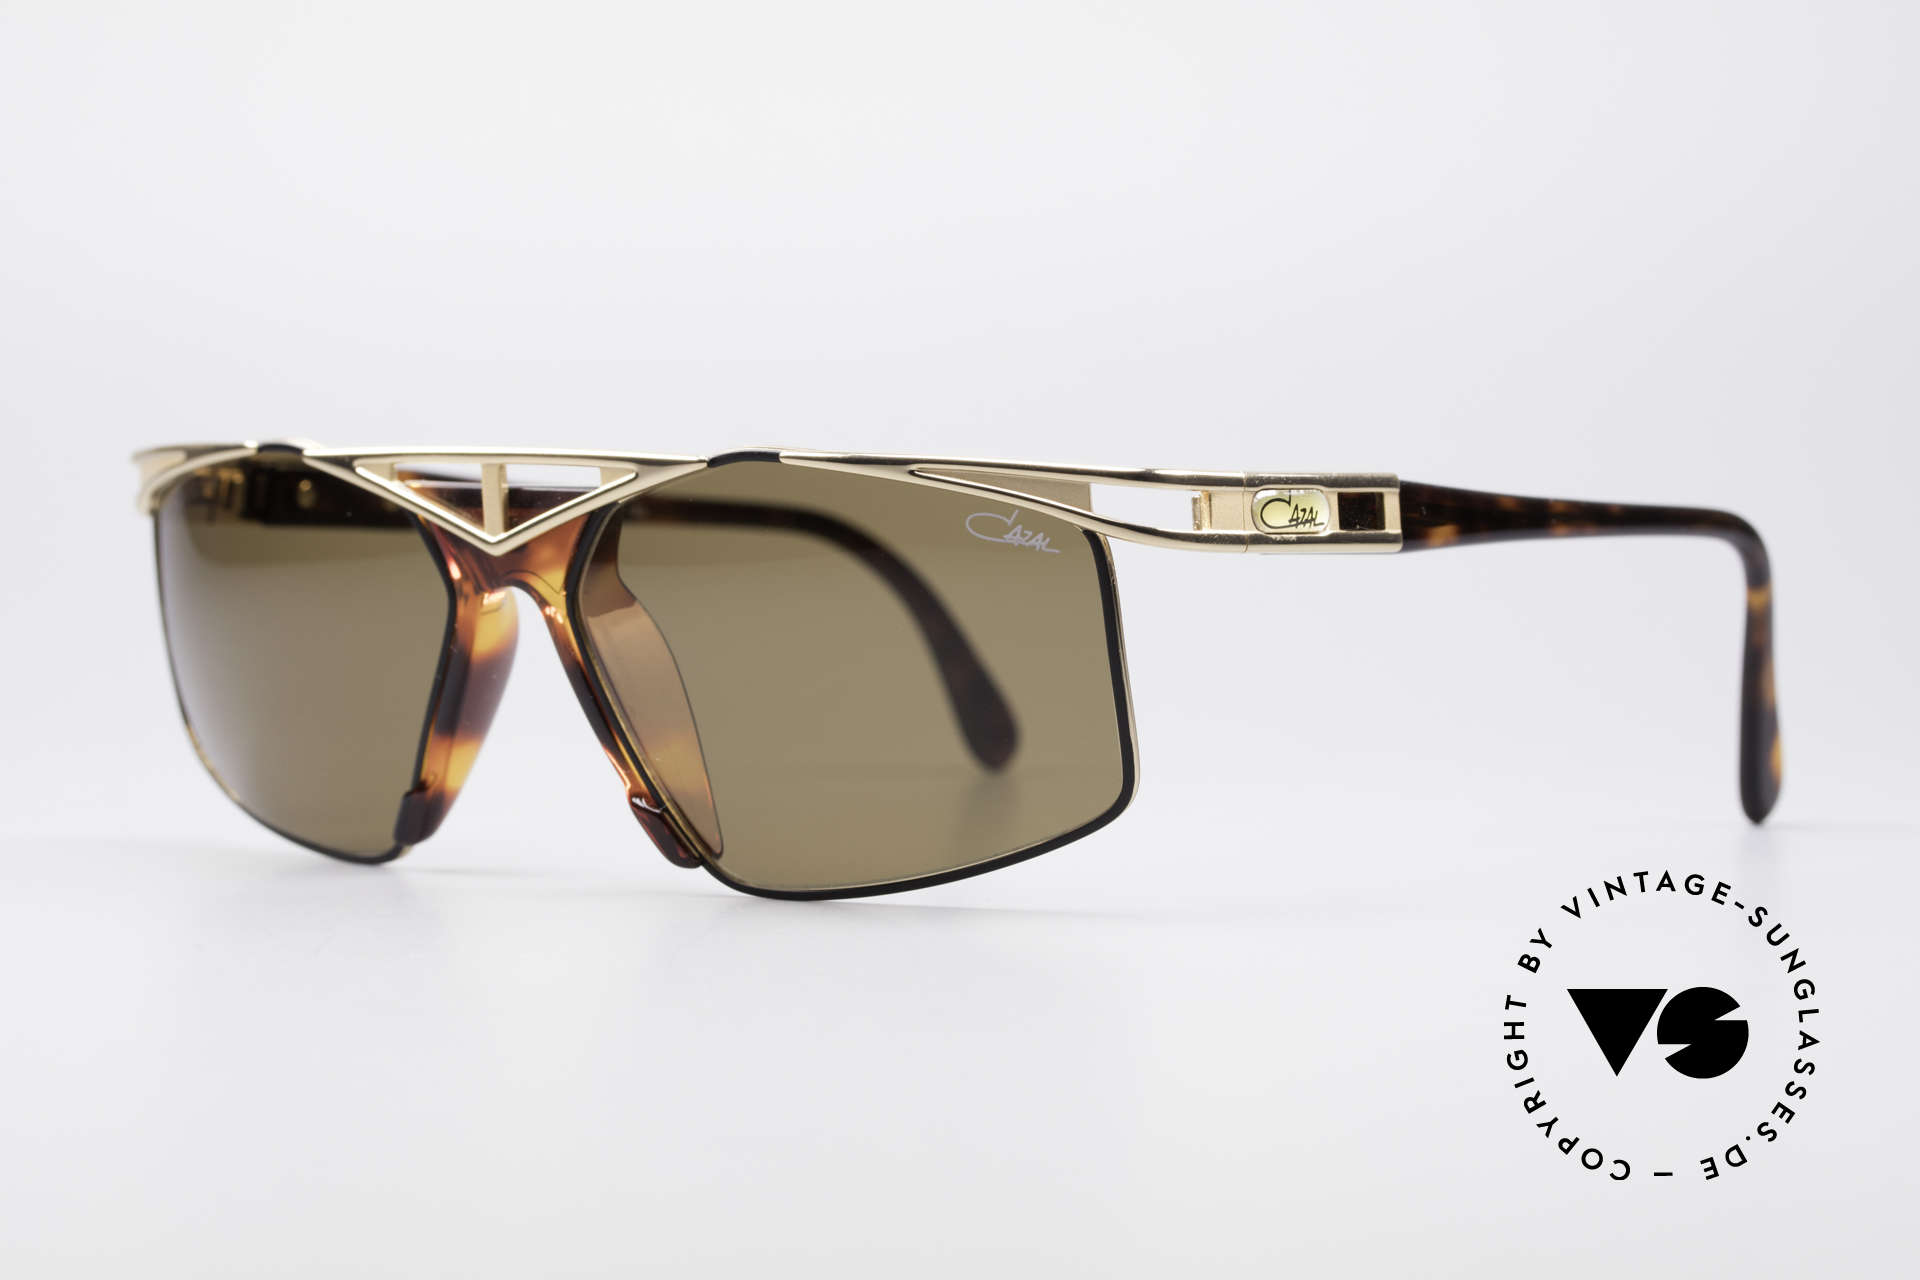 Cazal 962 90s Designer Sunglasses, grand combination of color concept, design & materials, Made for Men and Women